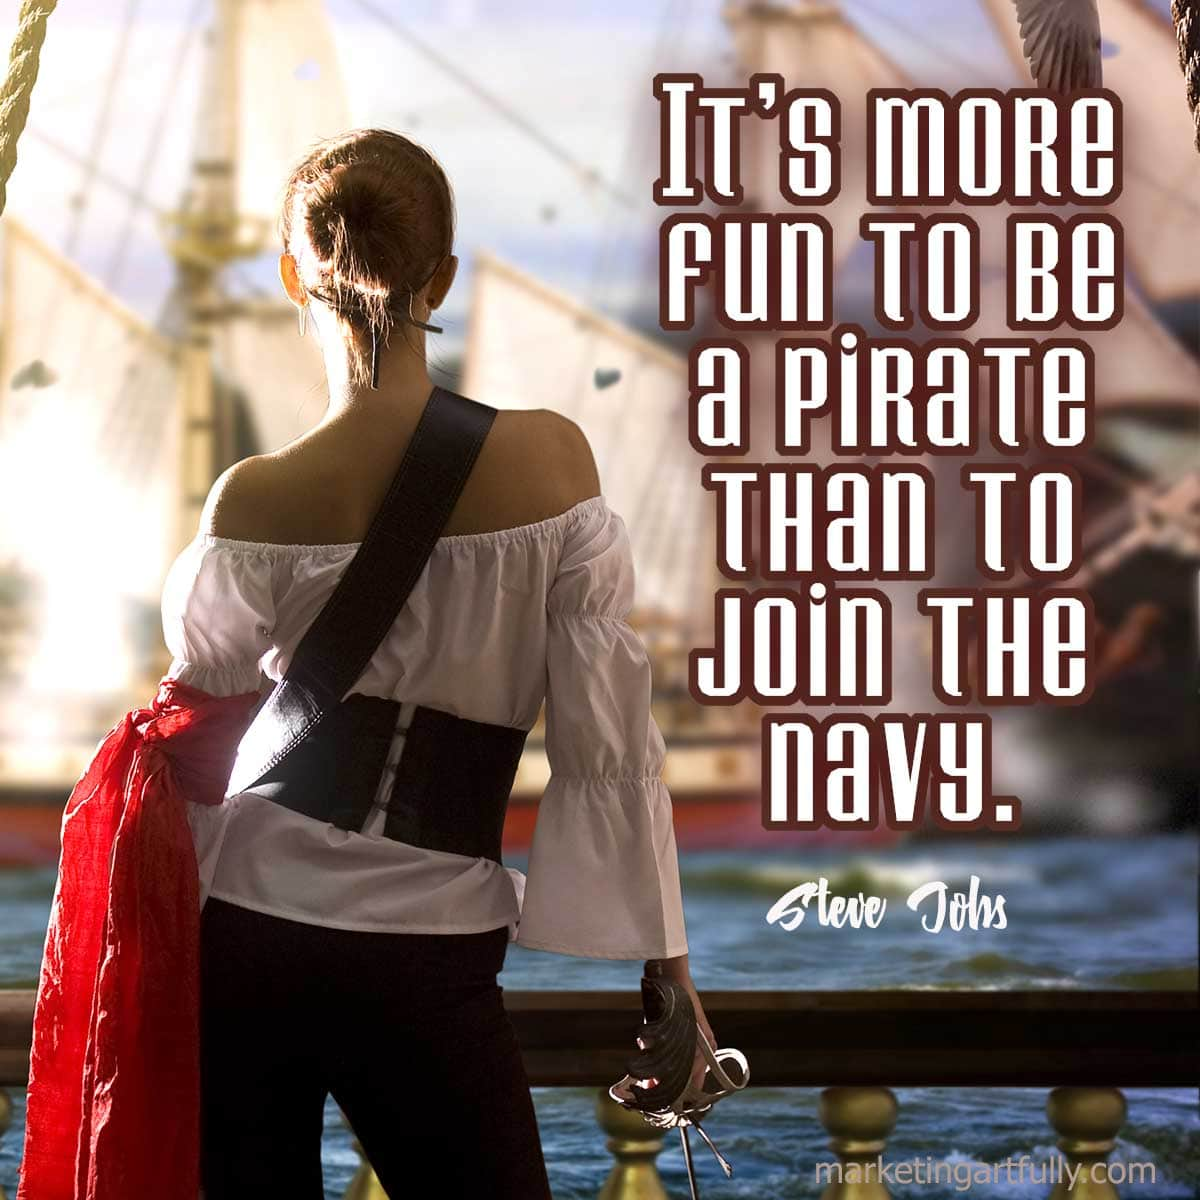 It's more fun to be a pirate than to join the navy.Steve Jobs